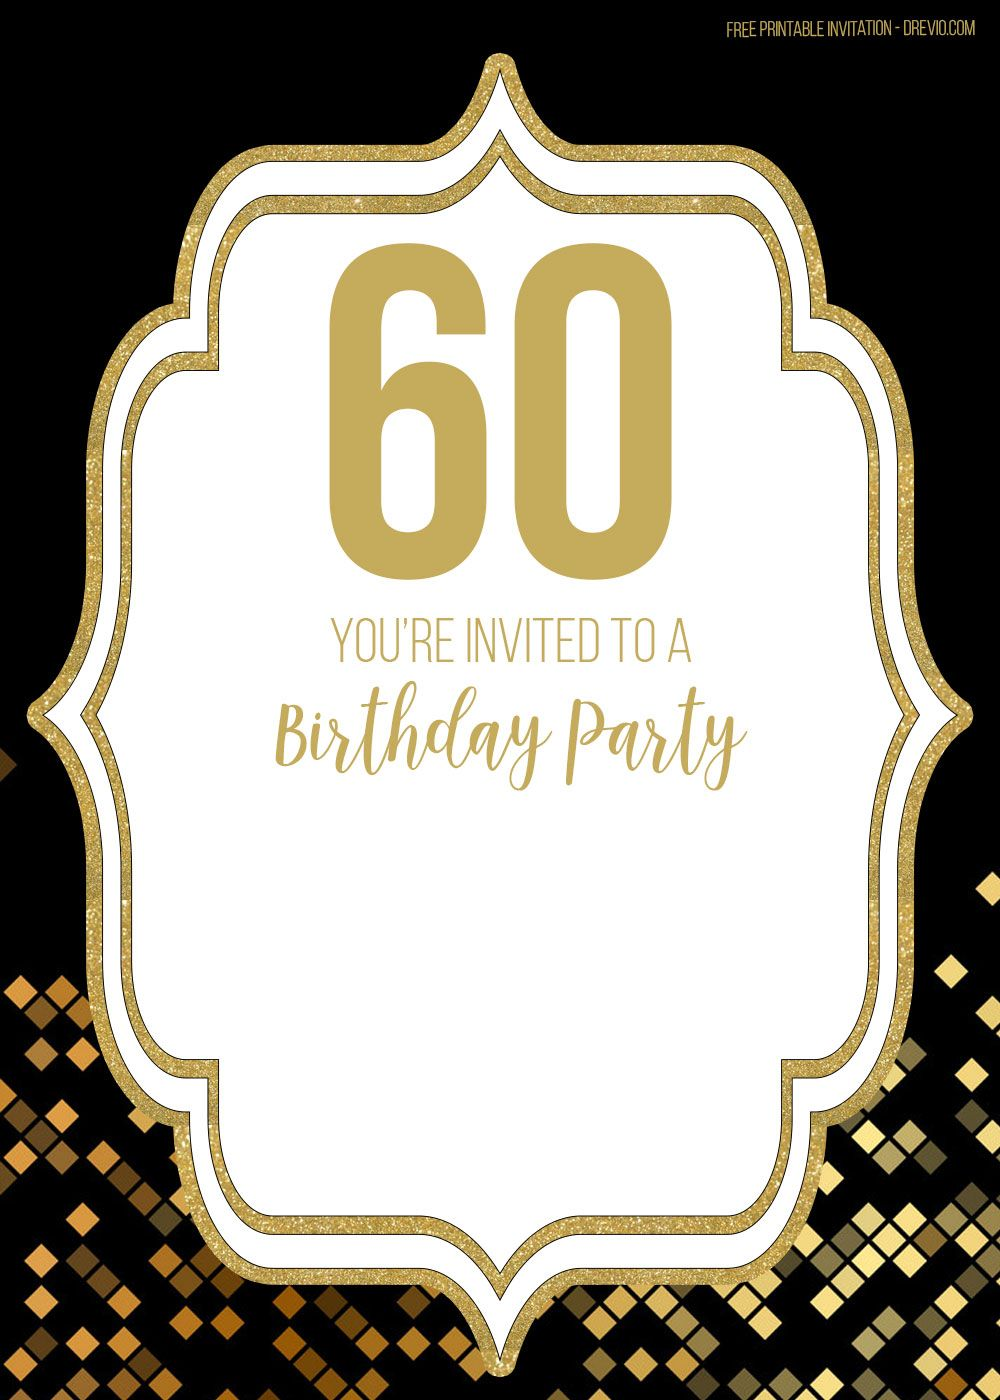 Free Printable Black And Gold 60th Birthday Invitation Templates 60th Birthday Invitations 60th Birthday Party Invitations Birthday Party Invitation Templates